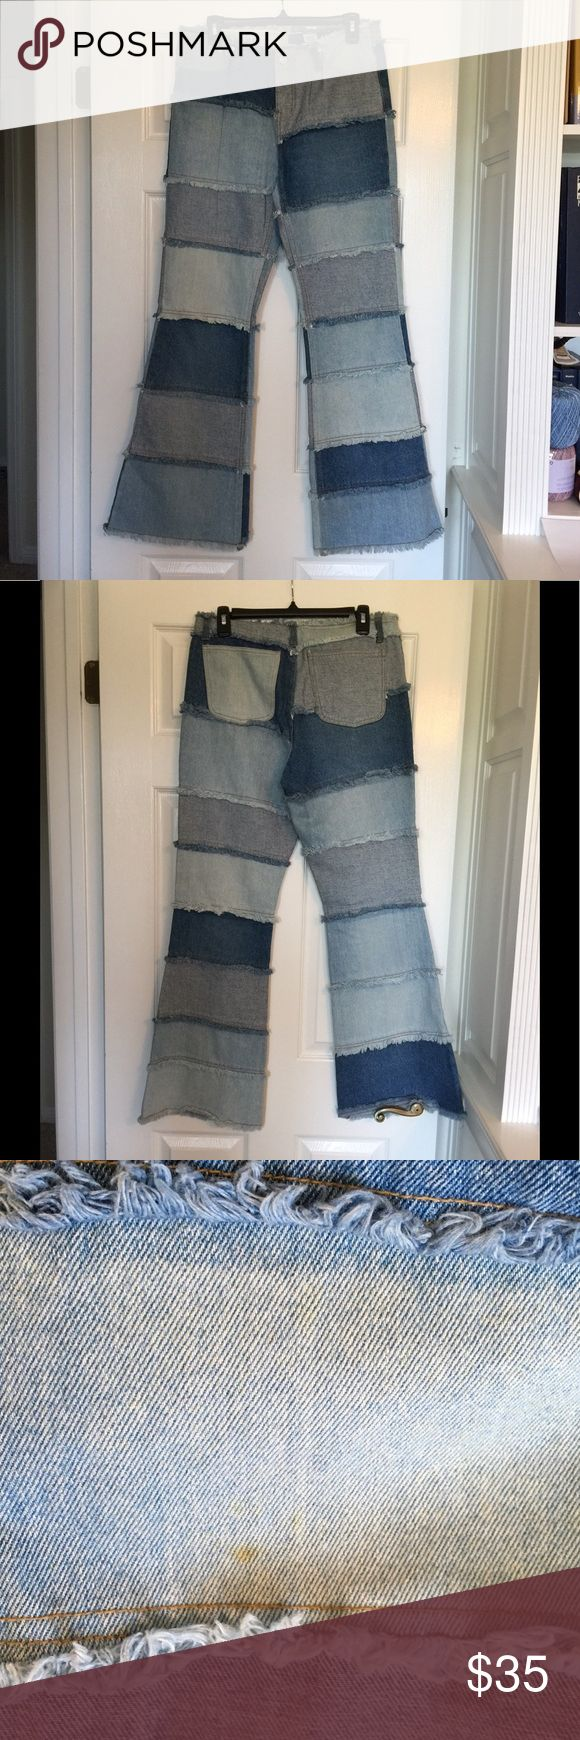 """Peppe Peluso Denim Jeans ~ Size 9 ~ New Sample Peppe Peluso Denim Jeans ~ Size 9 ~ New Sample ~ Patchwork and Frayed Denim ~ Approximate Measurements Lying Flat: Waist 15"""" Inseam 32"""" ~  PLEASE NOTE: ONE SMALL SPOT ON FRONT LEFT LEG PICTURED Peppe Peluso Jeans Flare & Wide Leg"""